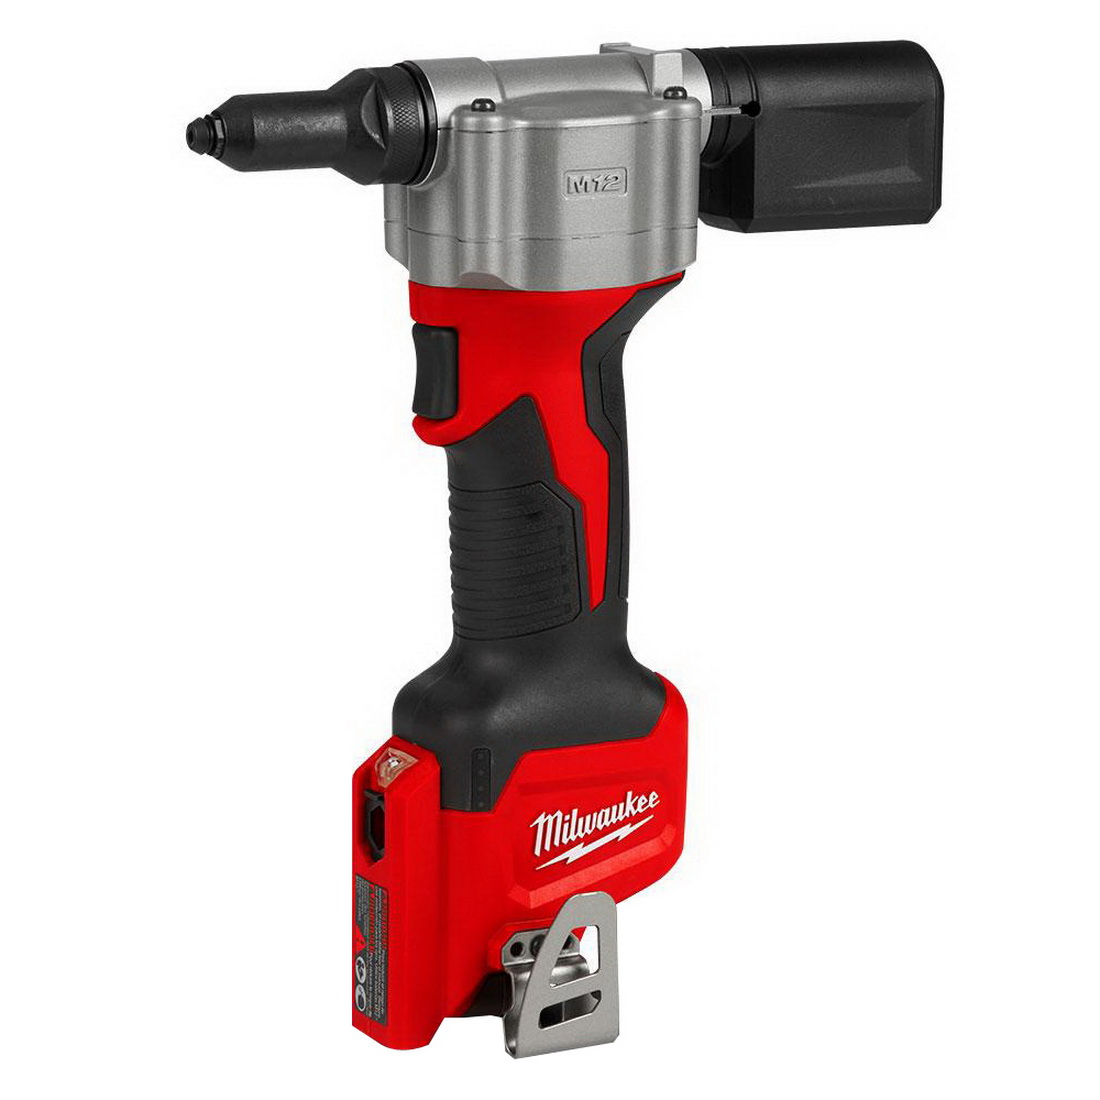 M12 Cordless Rivet Tool (Tool Only)